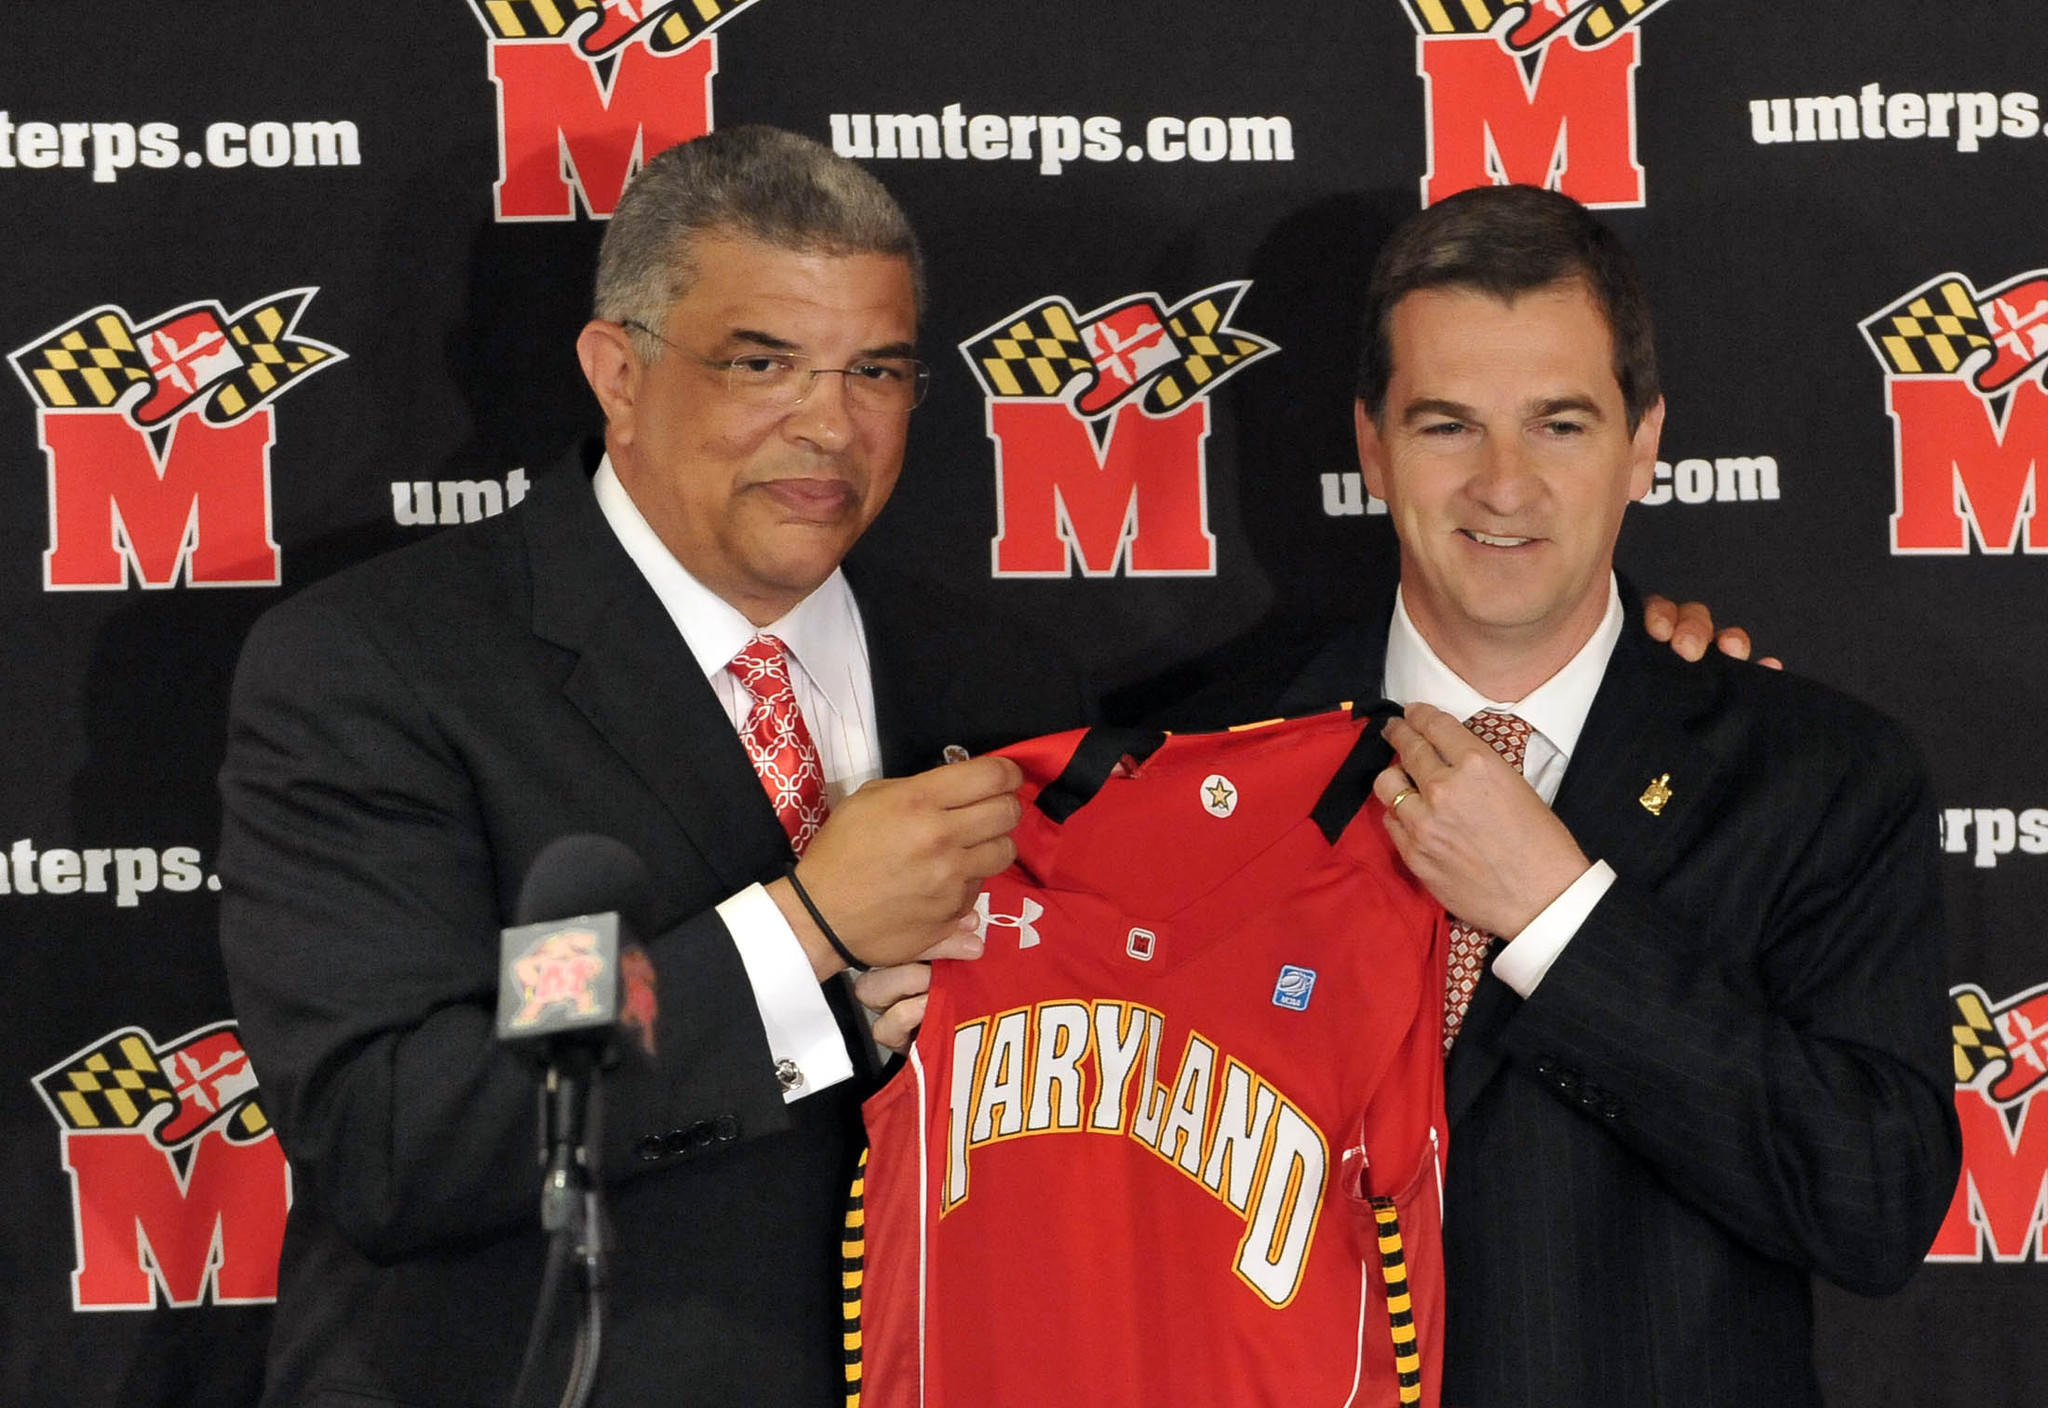 Terps men's basketball coach Mark Turgeon was the state's top-paid employee in 2013.